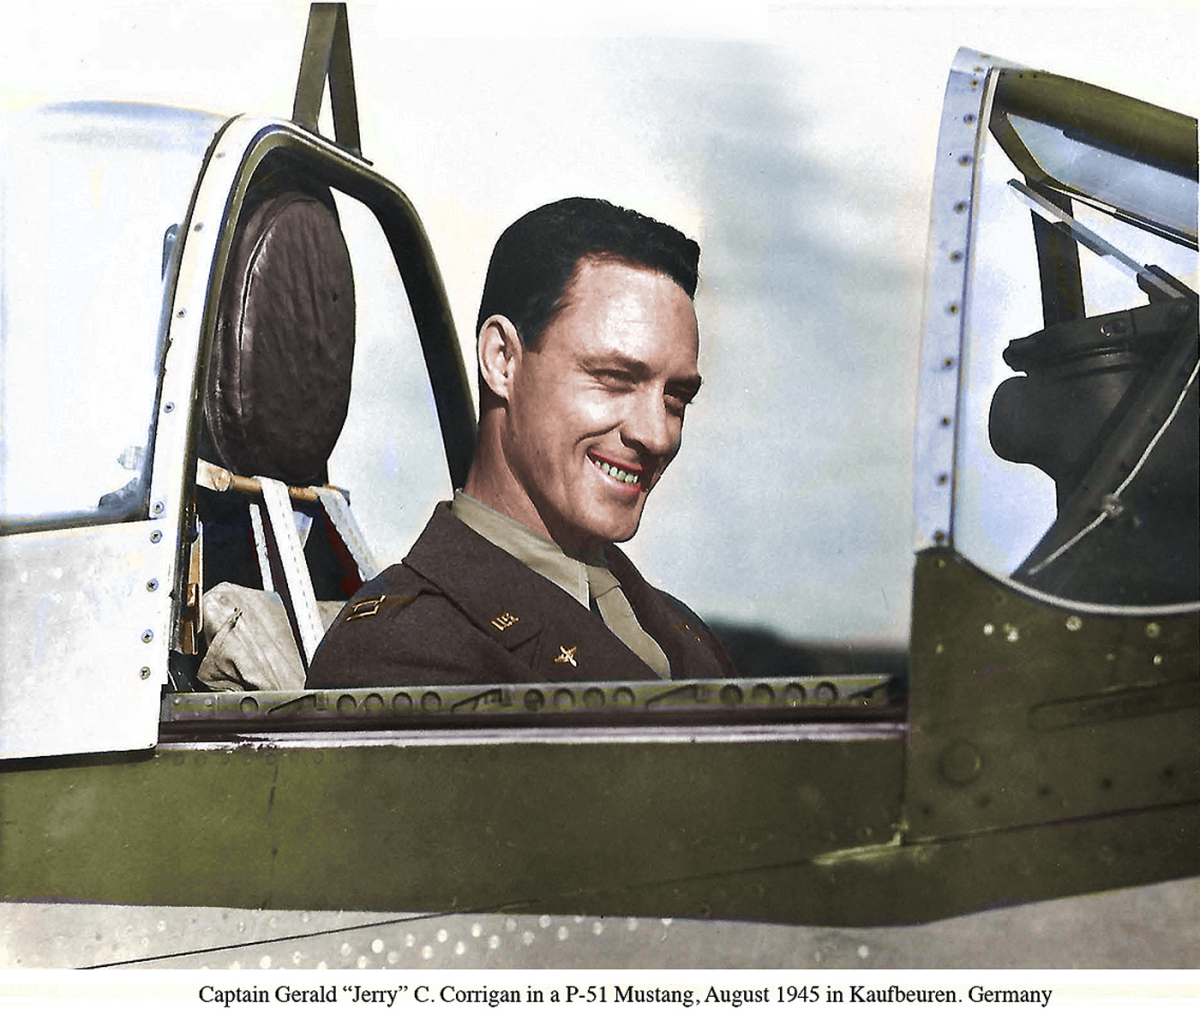 Corrigan in P-51 Colorized